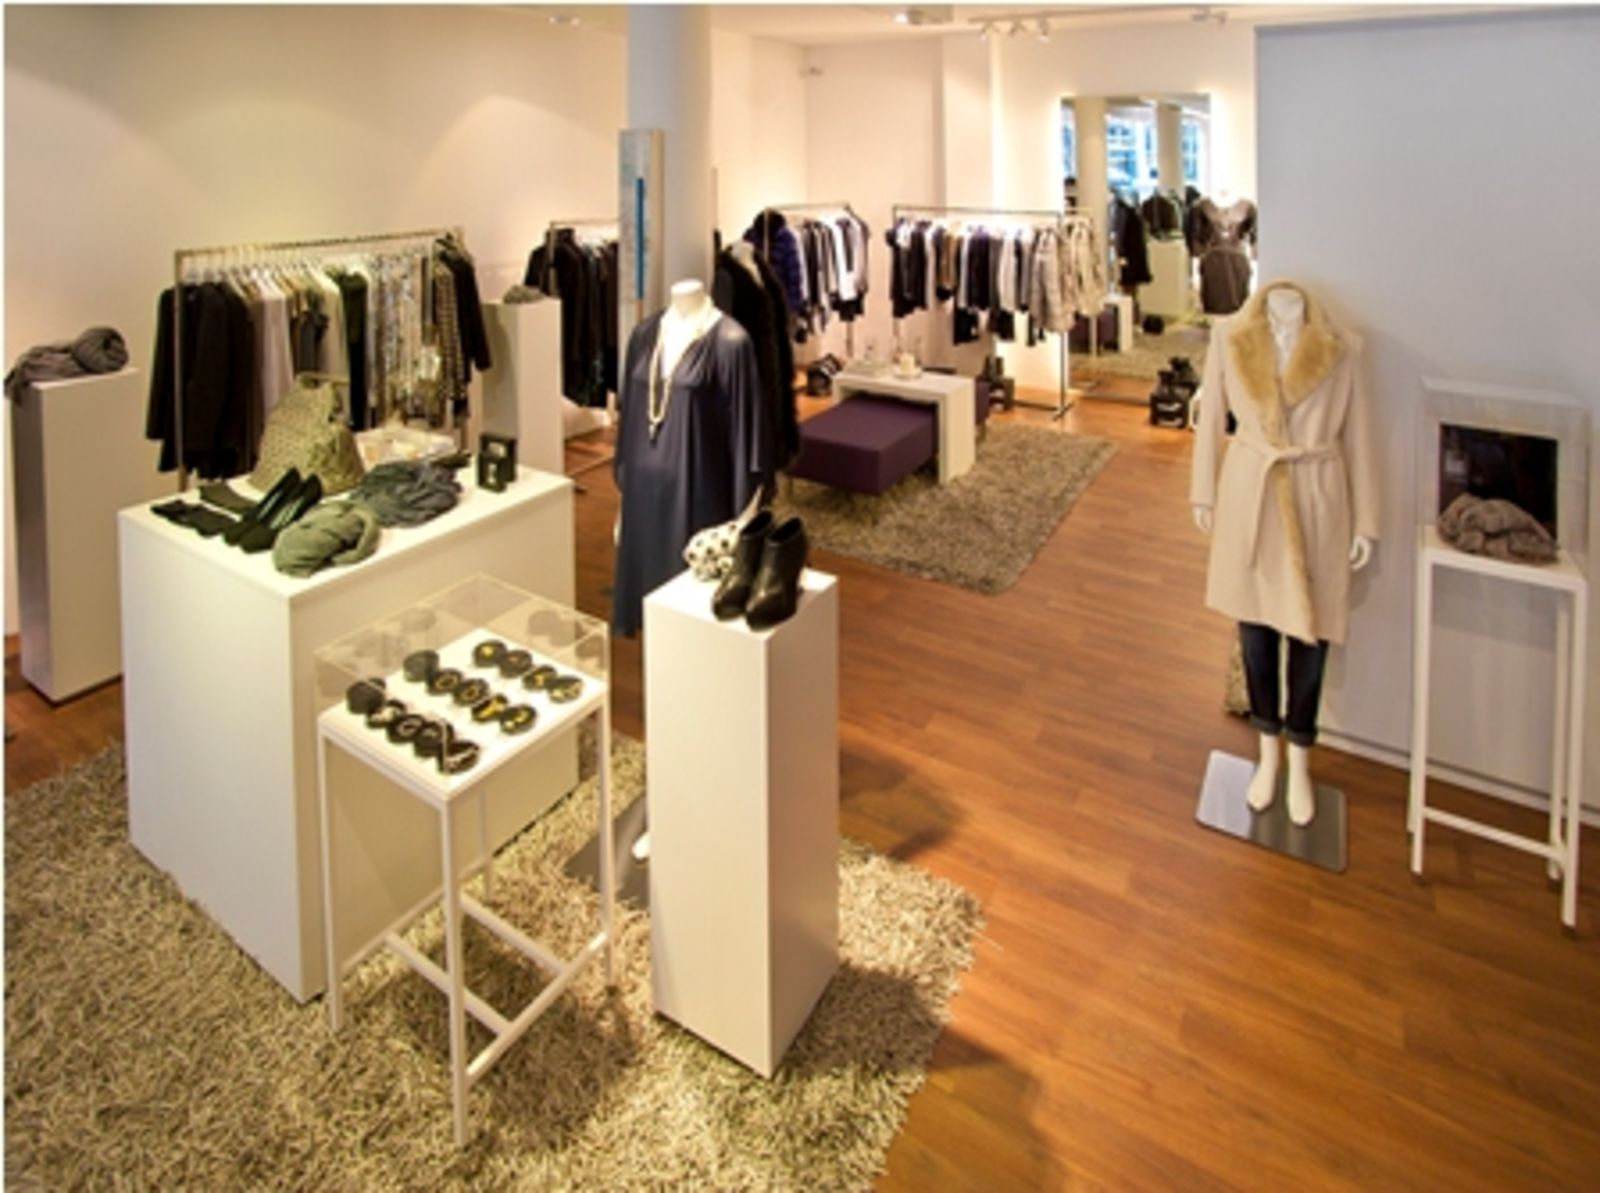 dipol - urban fashion brands in Mannheim (Bild 14)